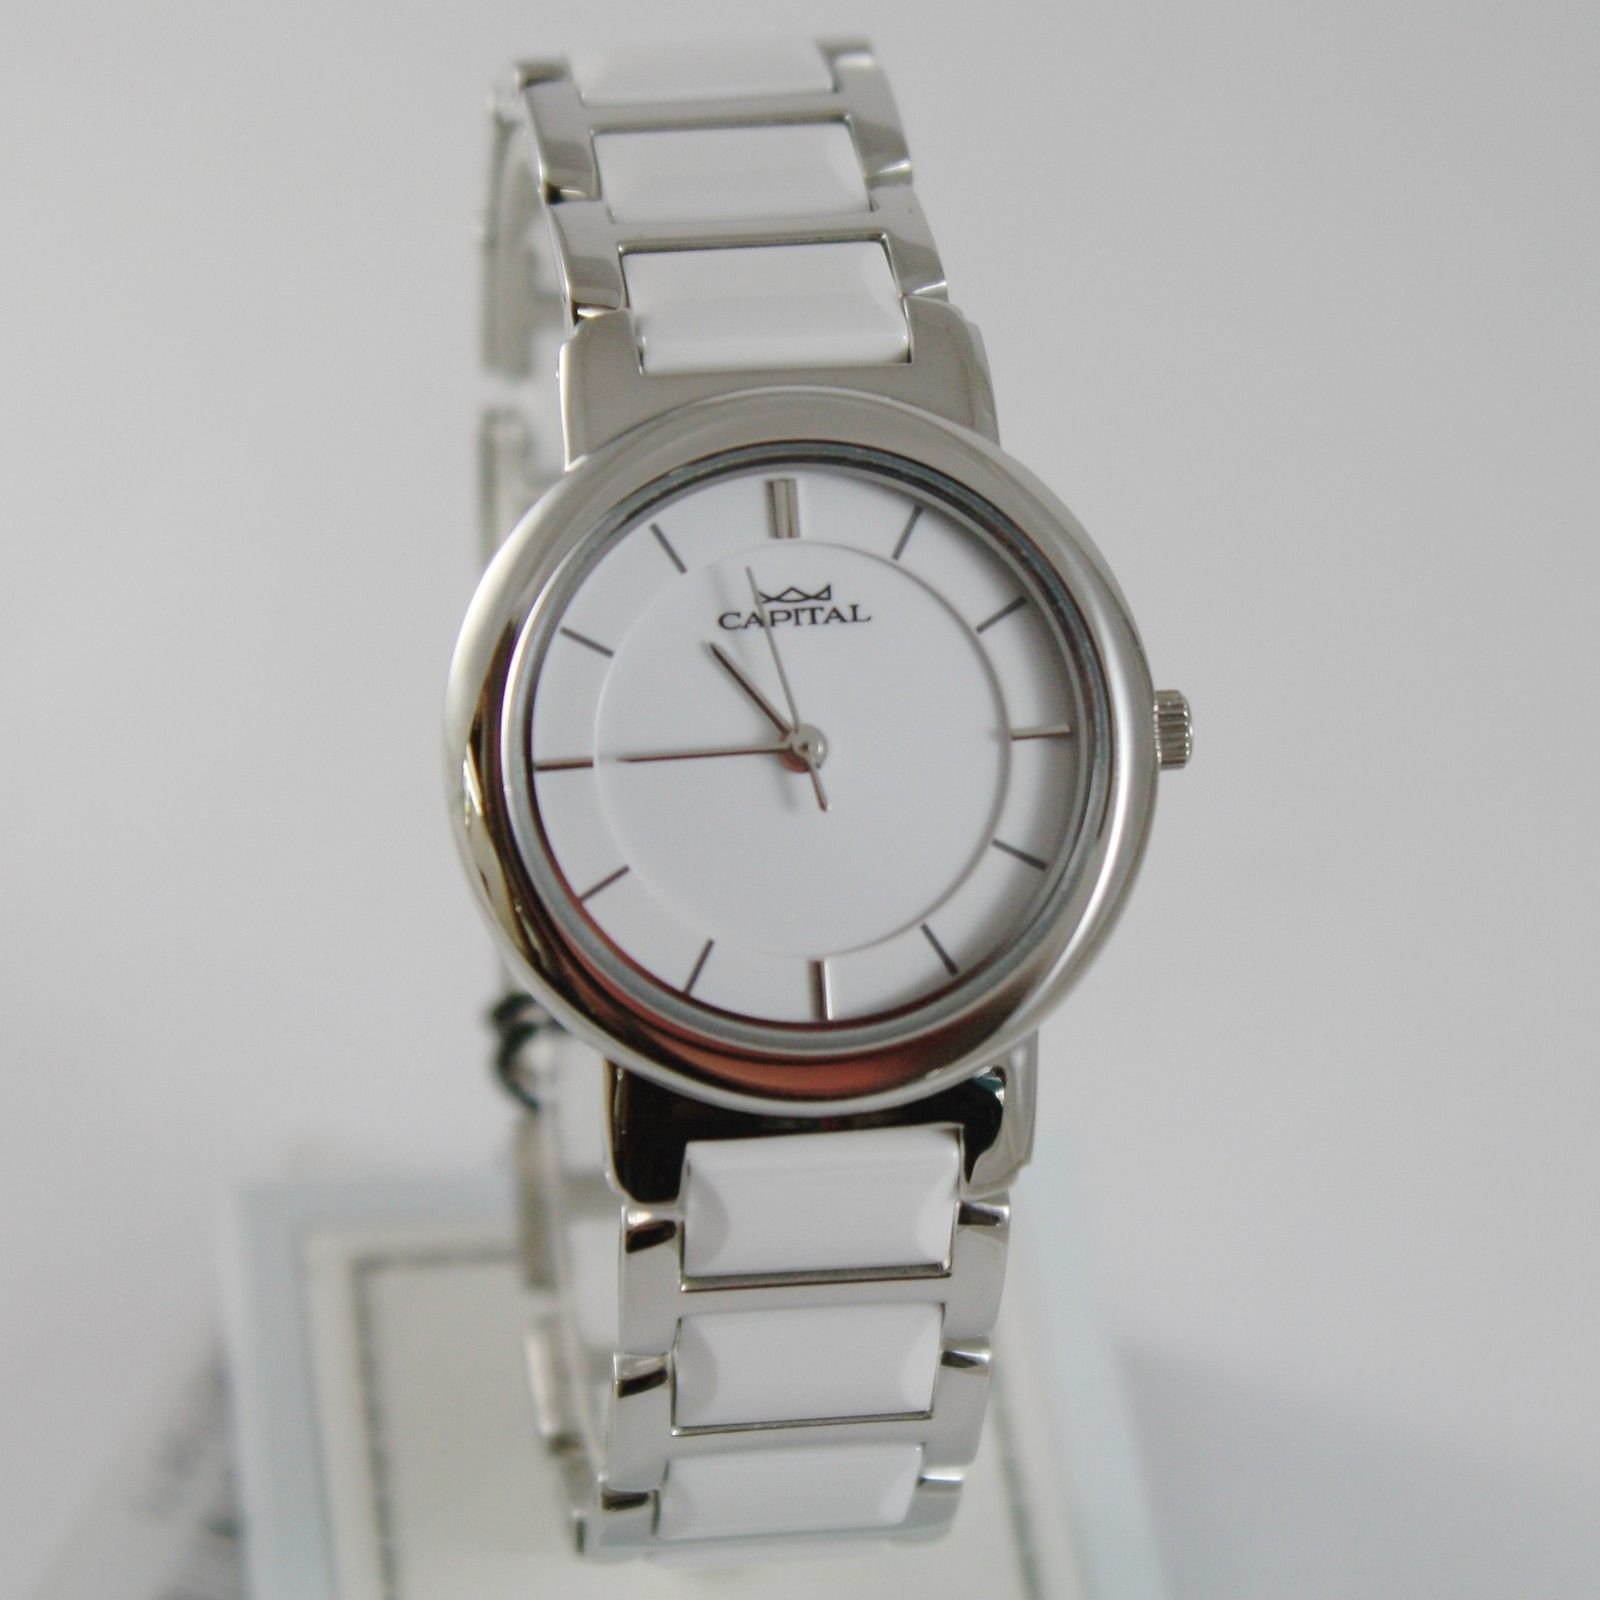 CAPITAL WATCH QUARTZ MOVEMENT 30 MM CASE, STAINLESS STEEL AND WHITE CERAMIC